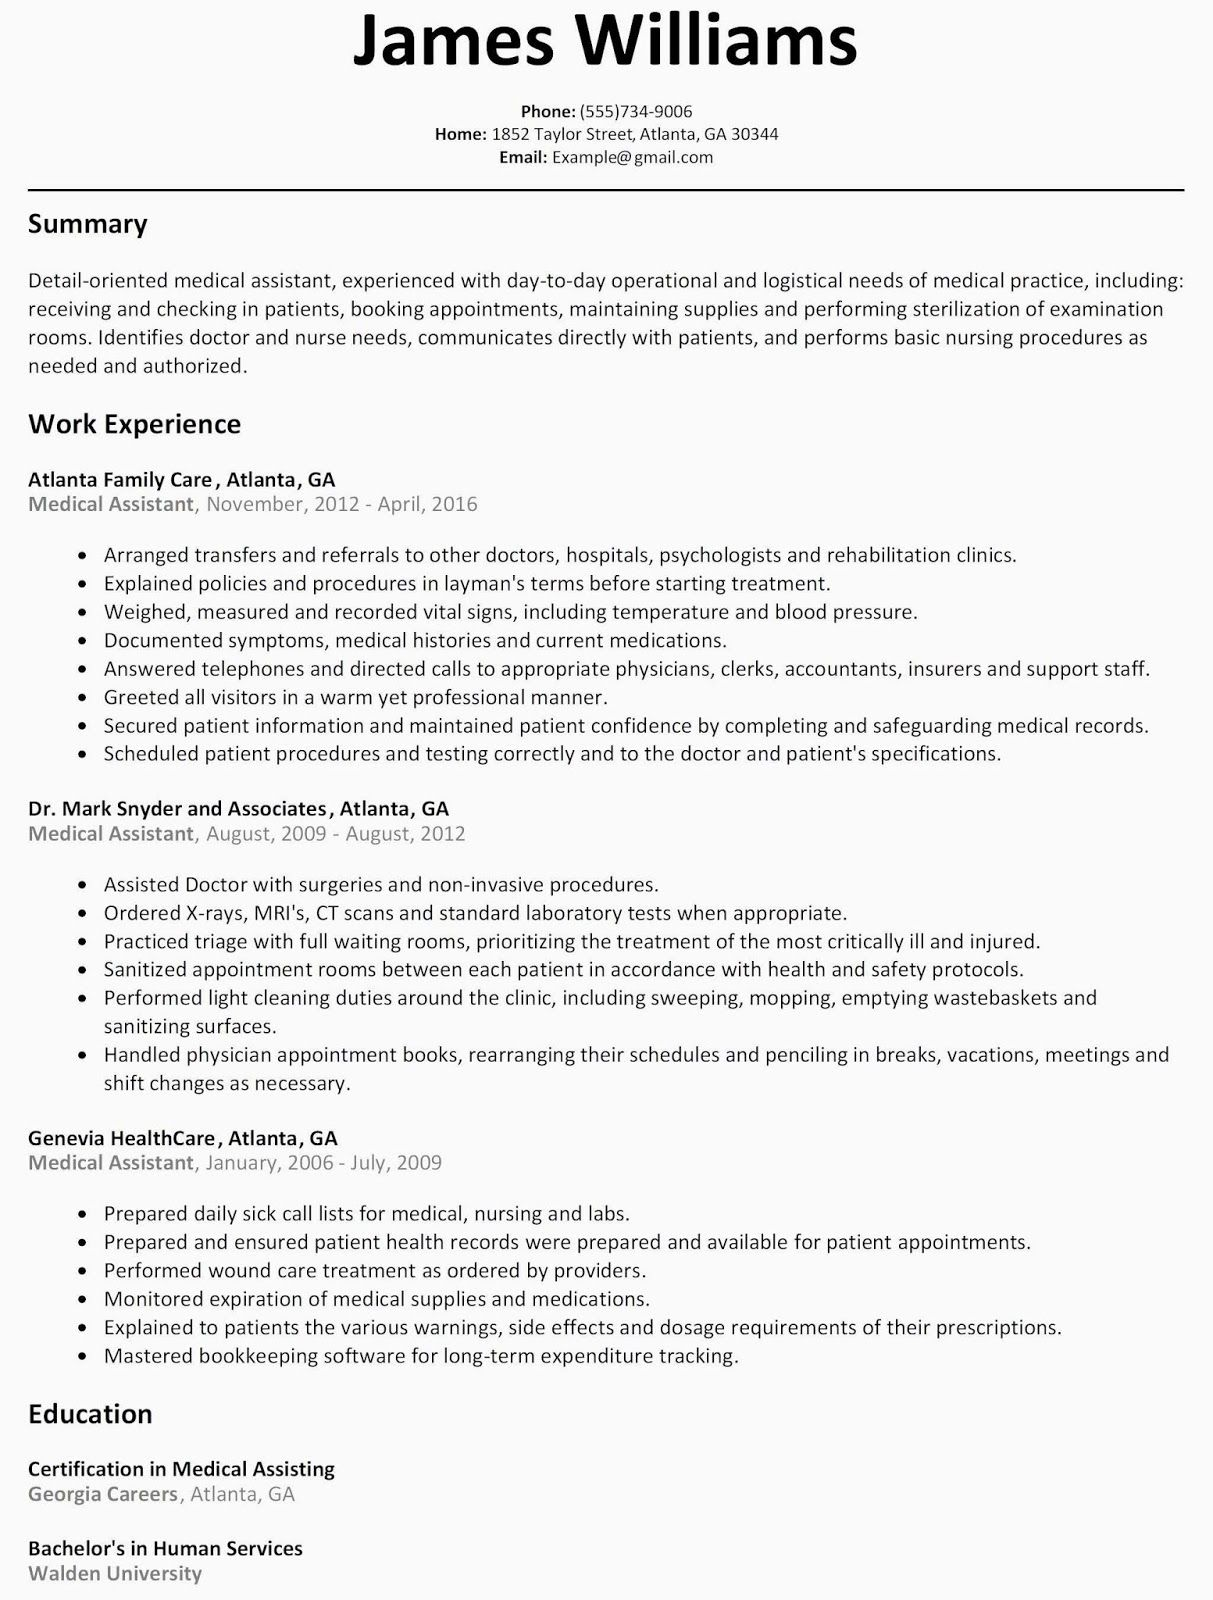 Police Officer Resume Templates Beste